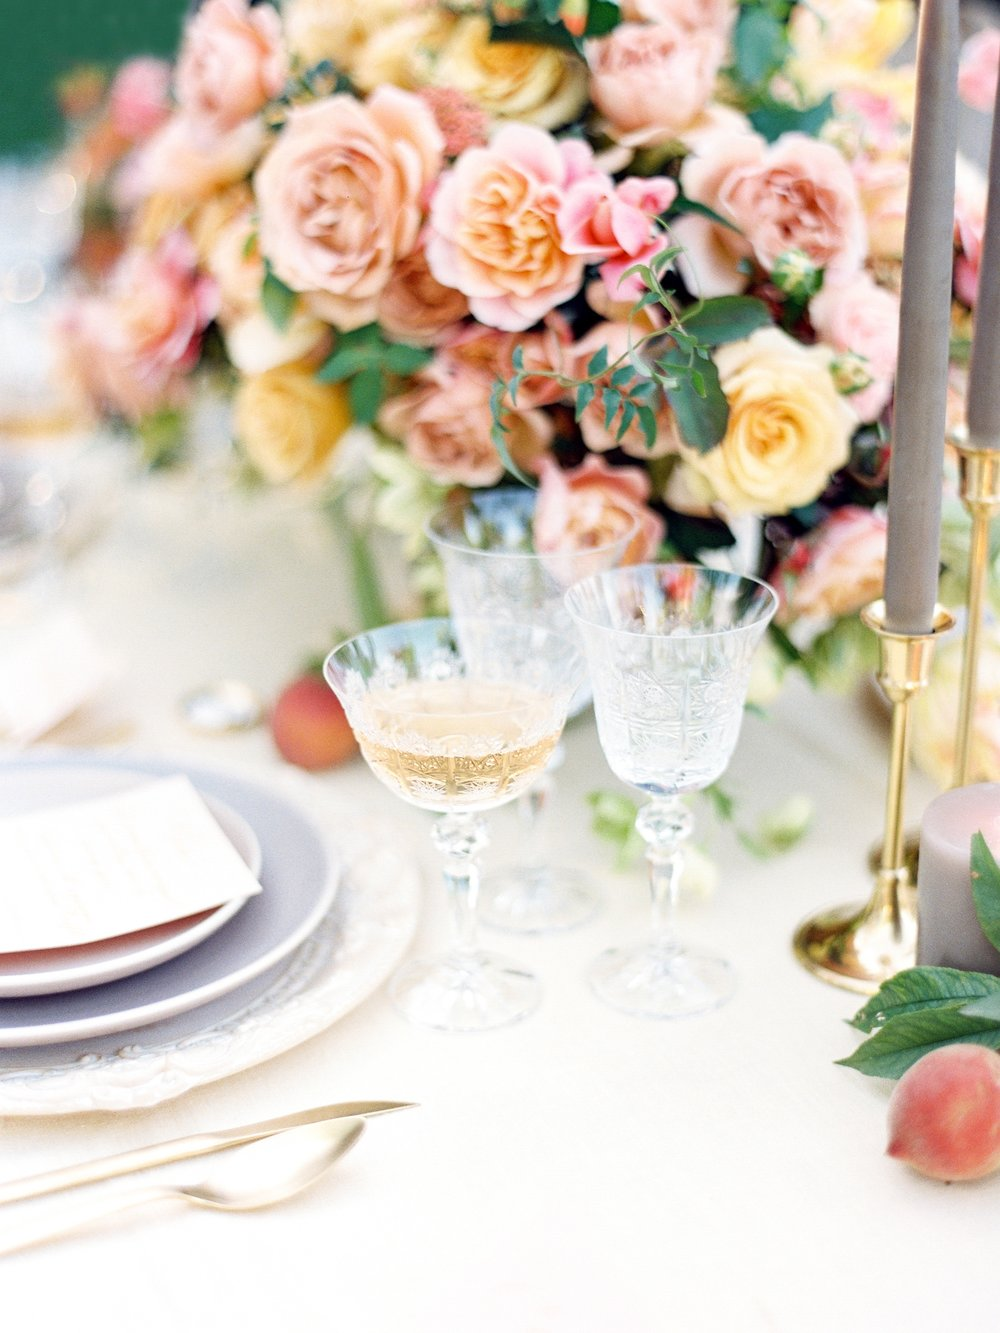 full-service - —event set-up with ceremony designs + reception/centerpiece florals at any california-based venue.